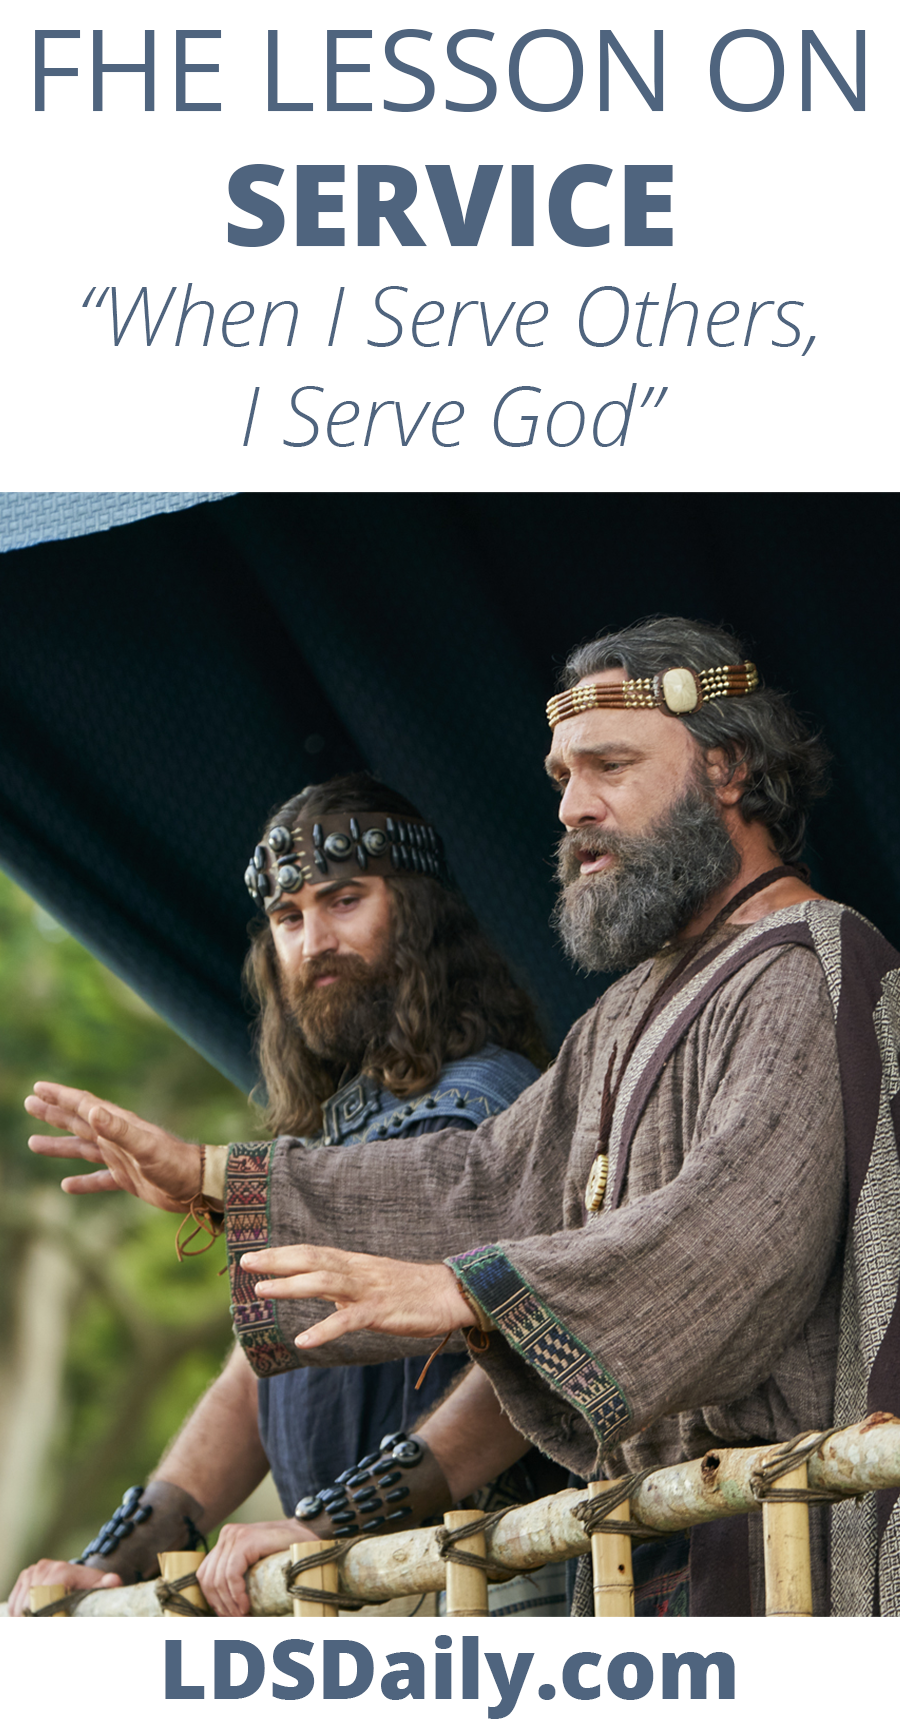 FHE Lesson on Service - When I Serve God, I Serve Others PIN